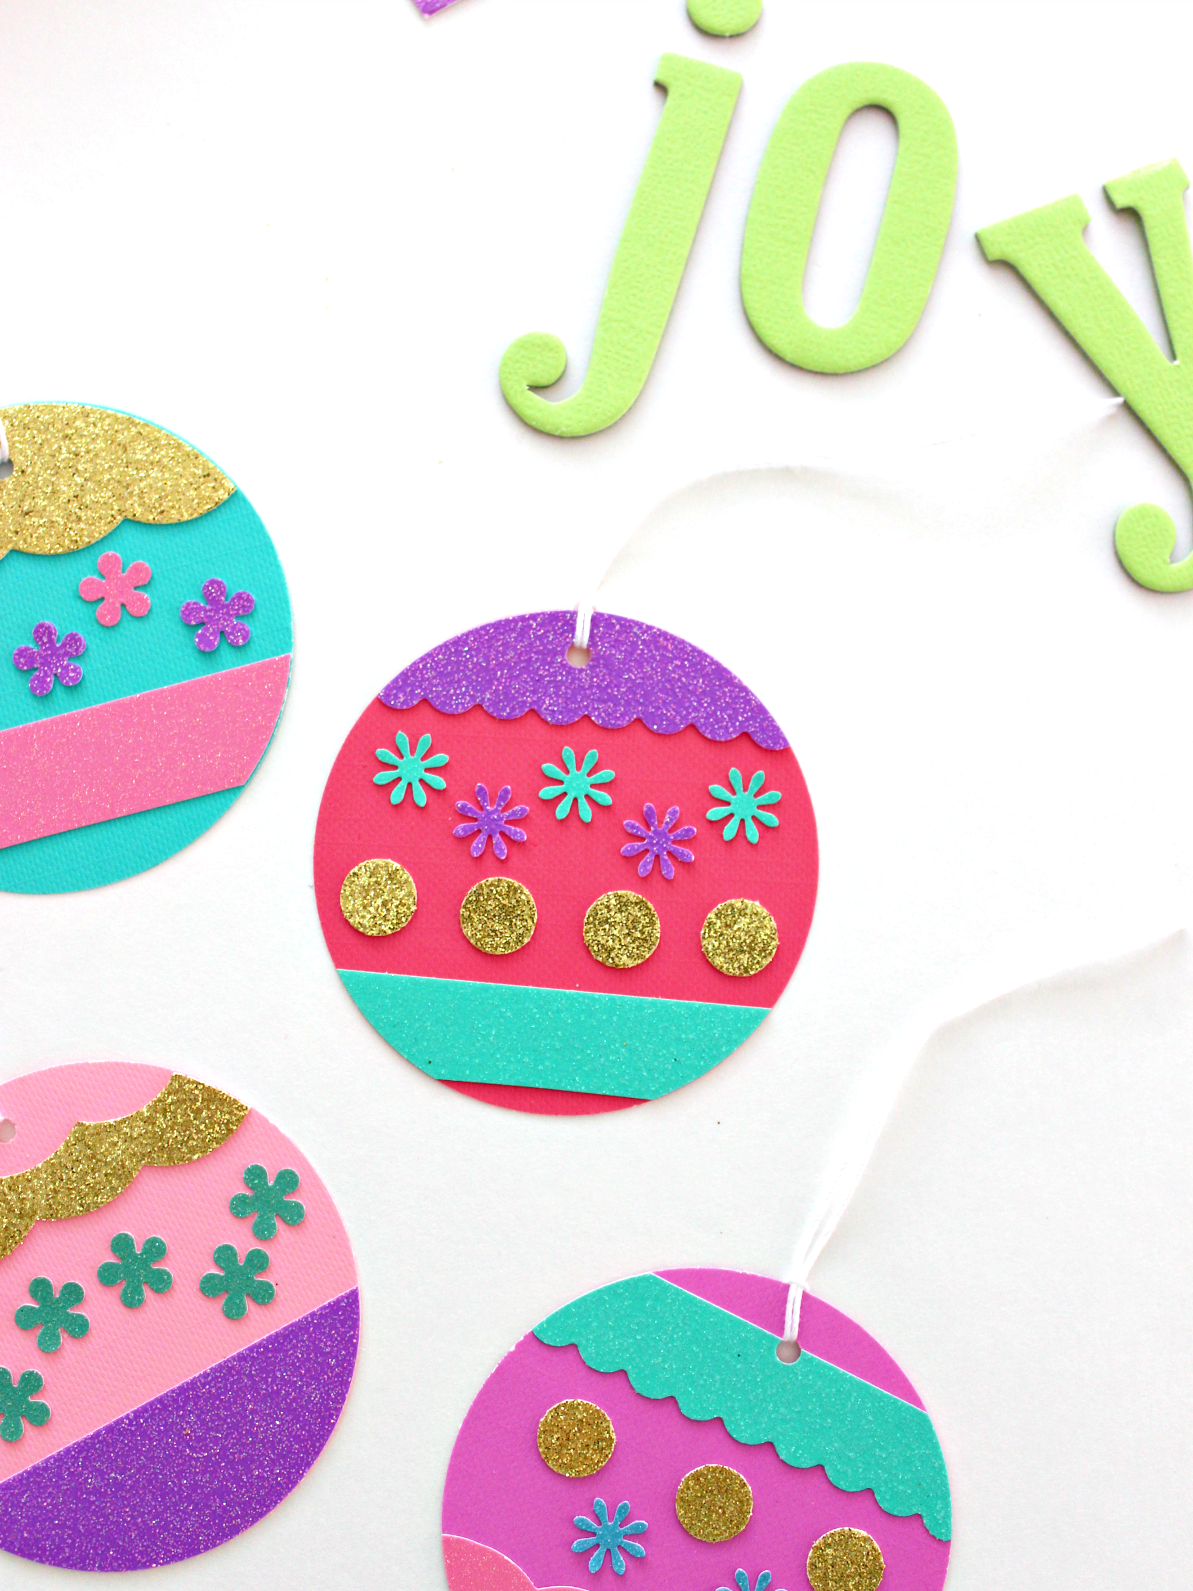 GLITTER PAPER HOLIDAY ORNAMENT TAGS & WHERE TO STOCK UP